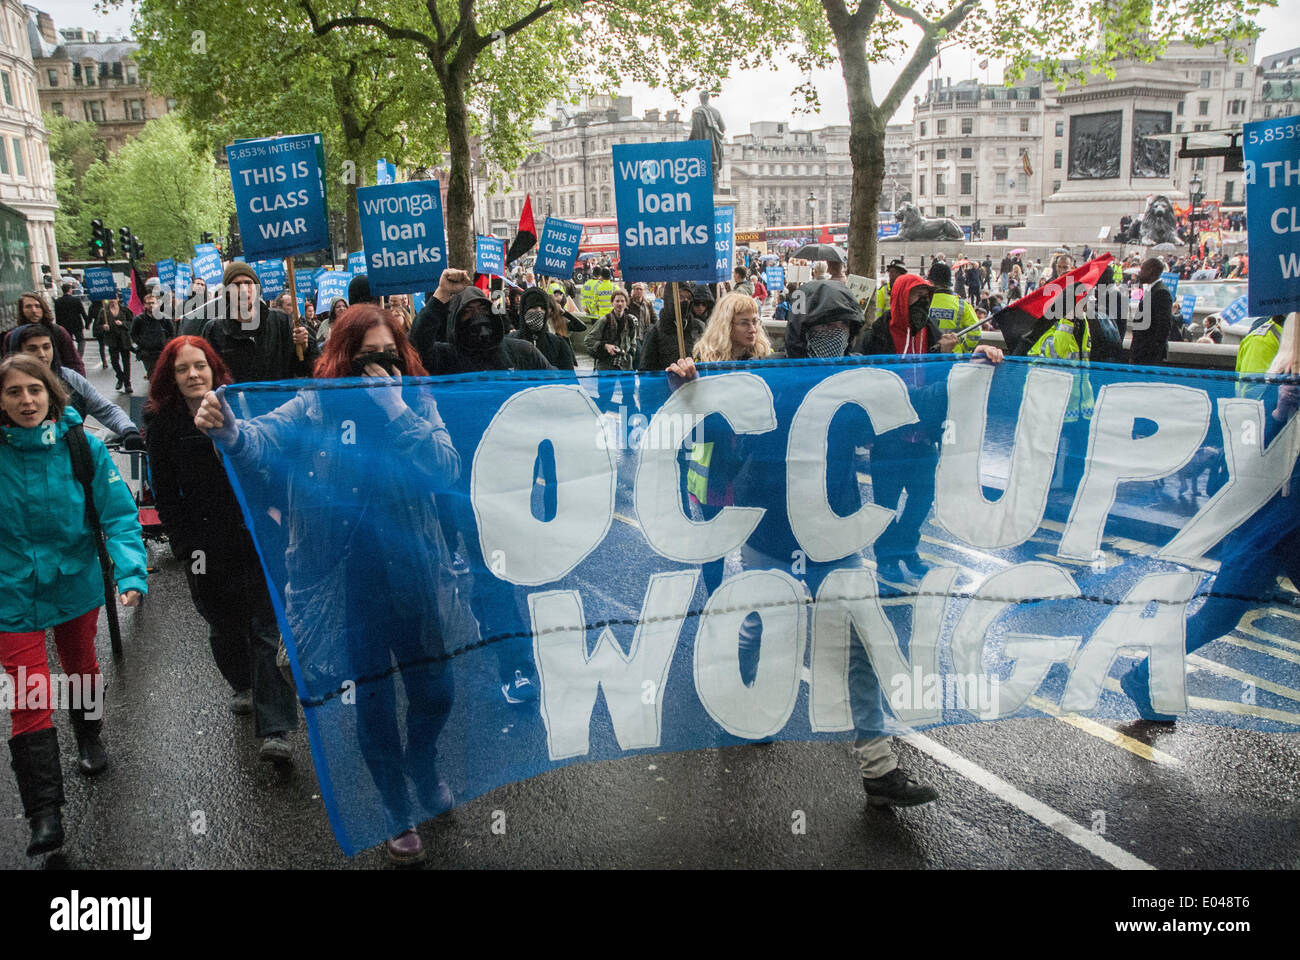 London, UK. 01st May, 2014. The Occupy Wonga group breaks away during the 2014 May Day rally in central London, the group is heading for the London office of WDFC UK Limited to protest against pay day loans that the company provides under the trading name wonga.com Credit:  Peter Manning/Alamy Live News - Stock Image